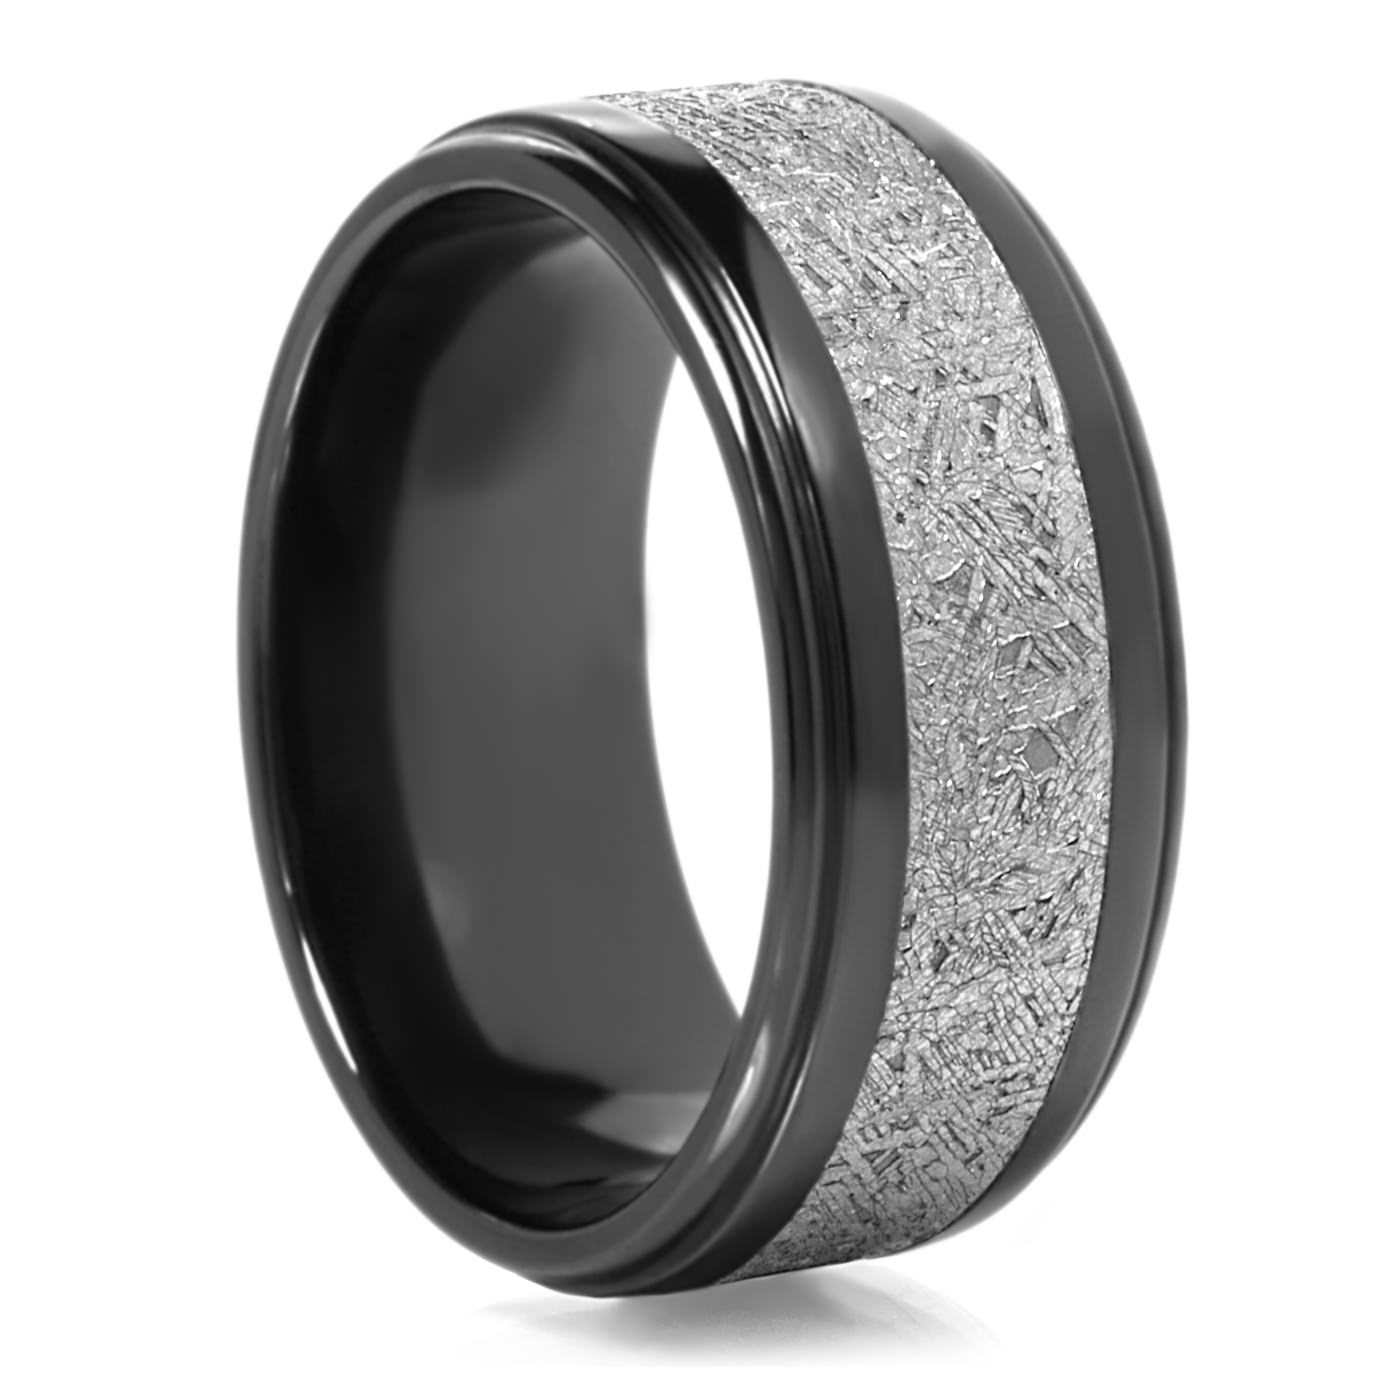 Lashbrook Black Zirconium & Meteorite Mens Wedding Band – 90 Day Pertaining To Black Zirconium Wedding Bands (View 9 of 15)